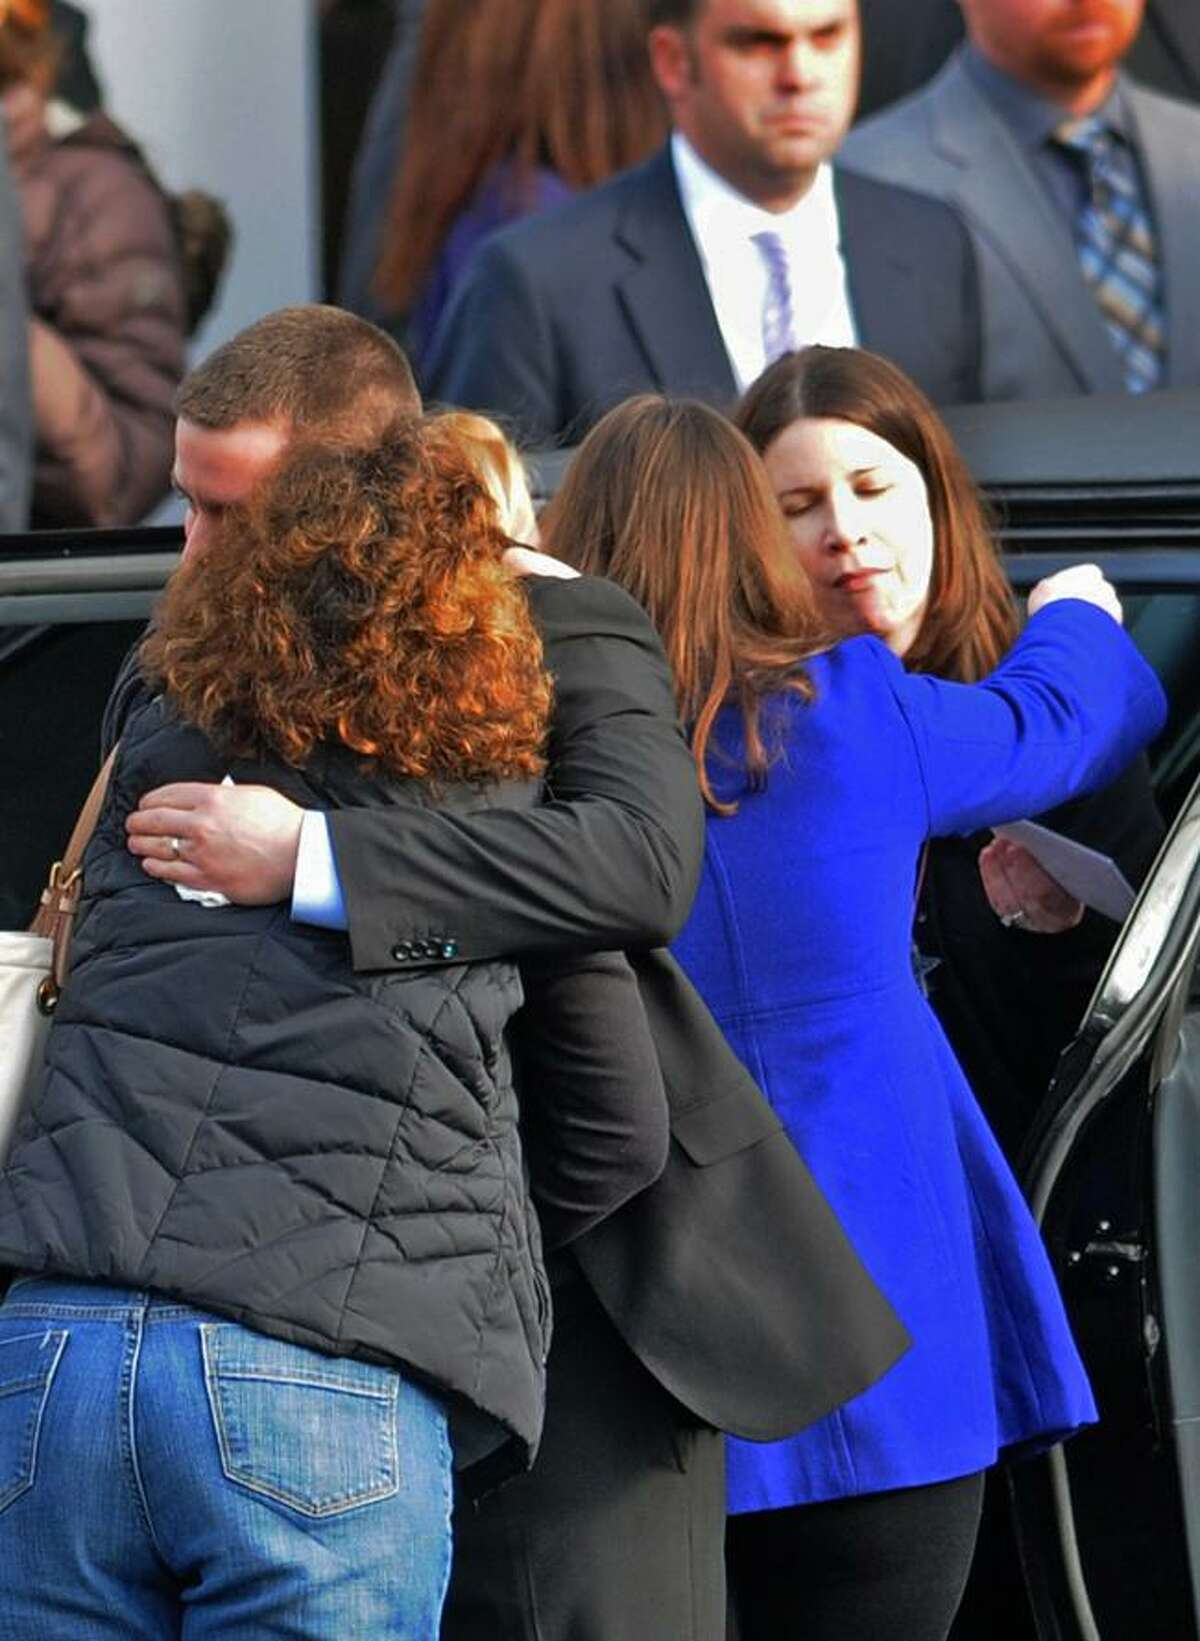 Rich Rekos, left, and his wife Krista Rekos, far right, hug mourners after the funeral of their daughter Jessica Rekos, 6, of Newtown at the St. Rose of Lima Roman Catholic church Tuesday morning December 18, 2012. Rekos was killed by a gunman who also claimed the lives of 6 adults and 19 other children at the Sandy Hooky Elementary School shooting Friday, December 15, 2012. Photo by Peter Hvizdak / New Haven Register